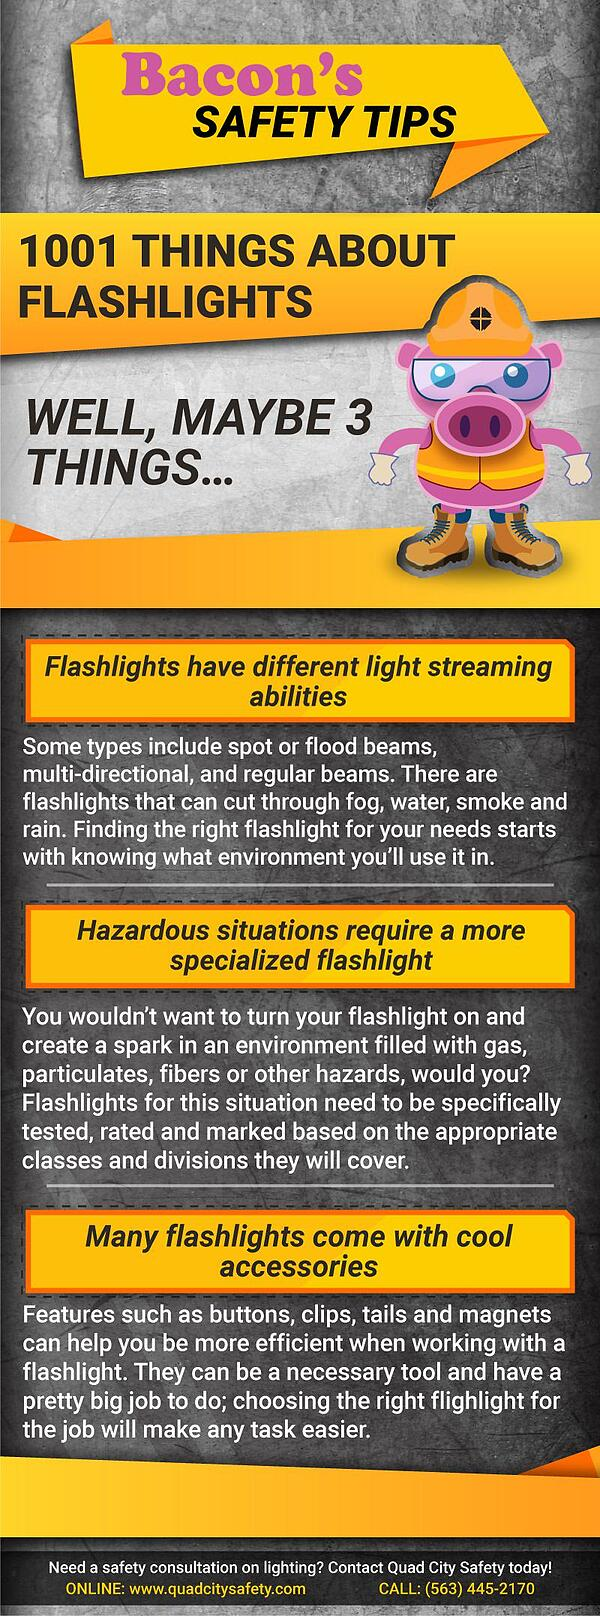 Bacon's Safety Tips 1001 Things About Flashlights